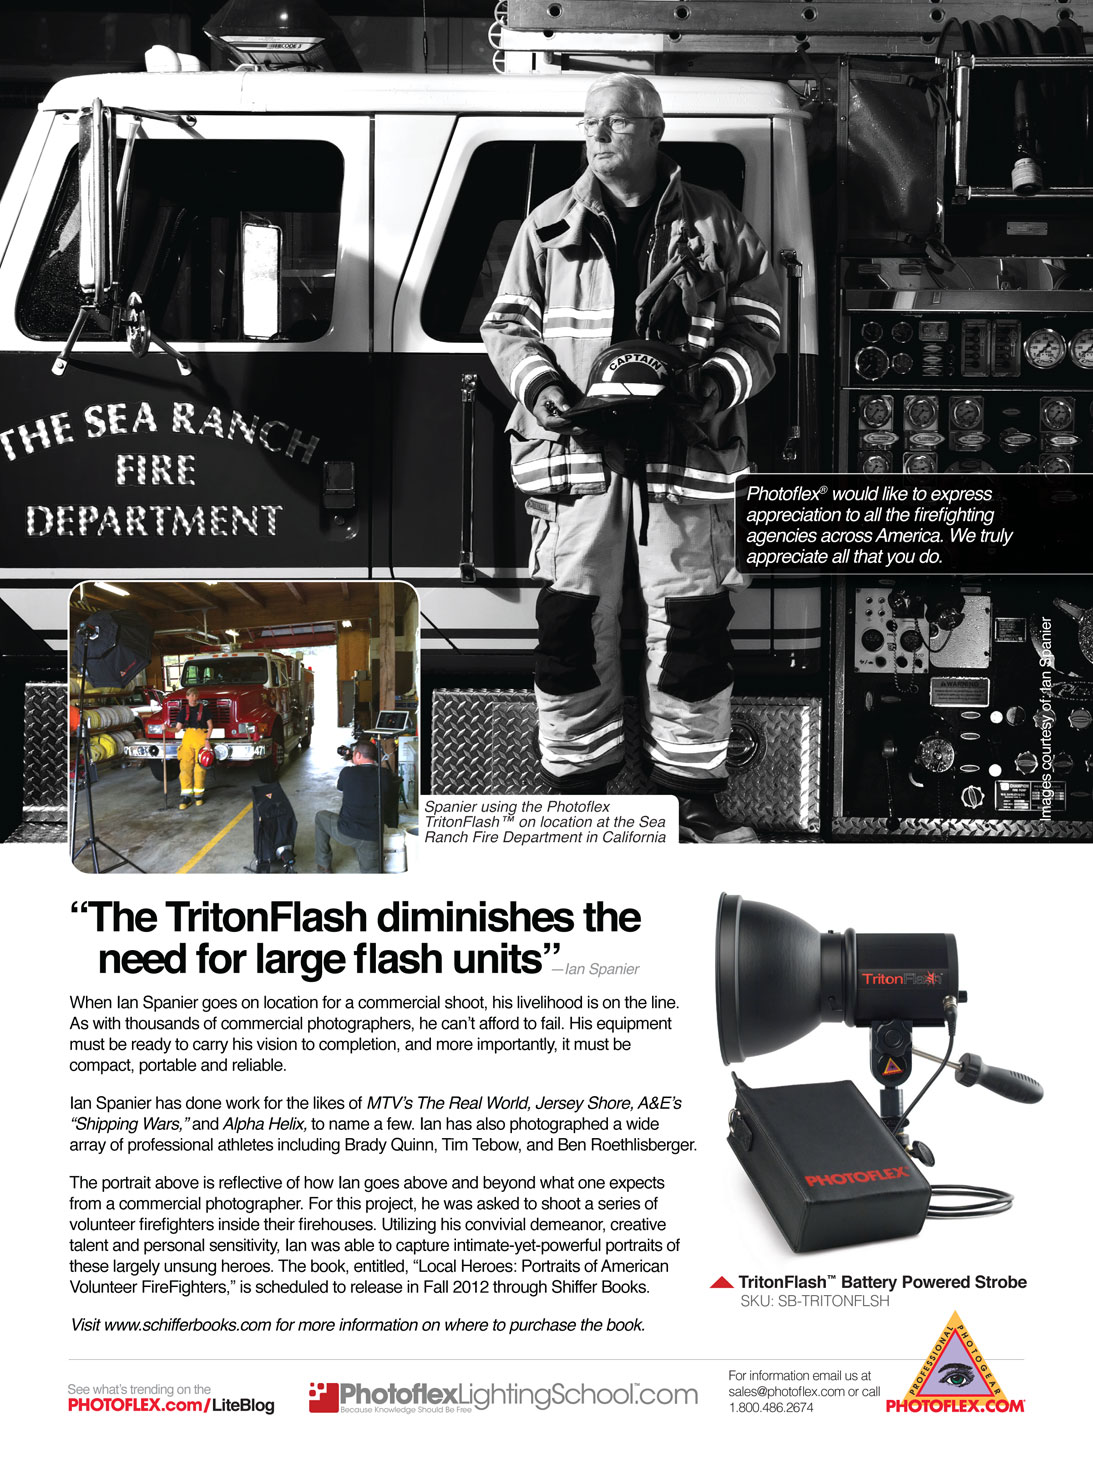 web_09_12_Photoflex_Ad.jpg